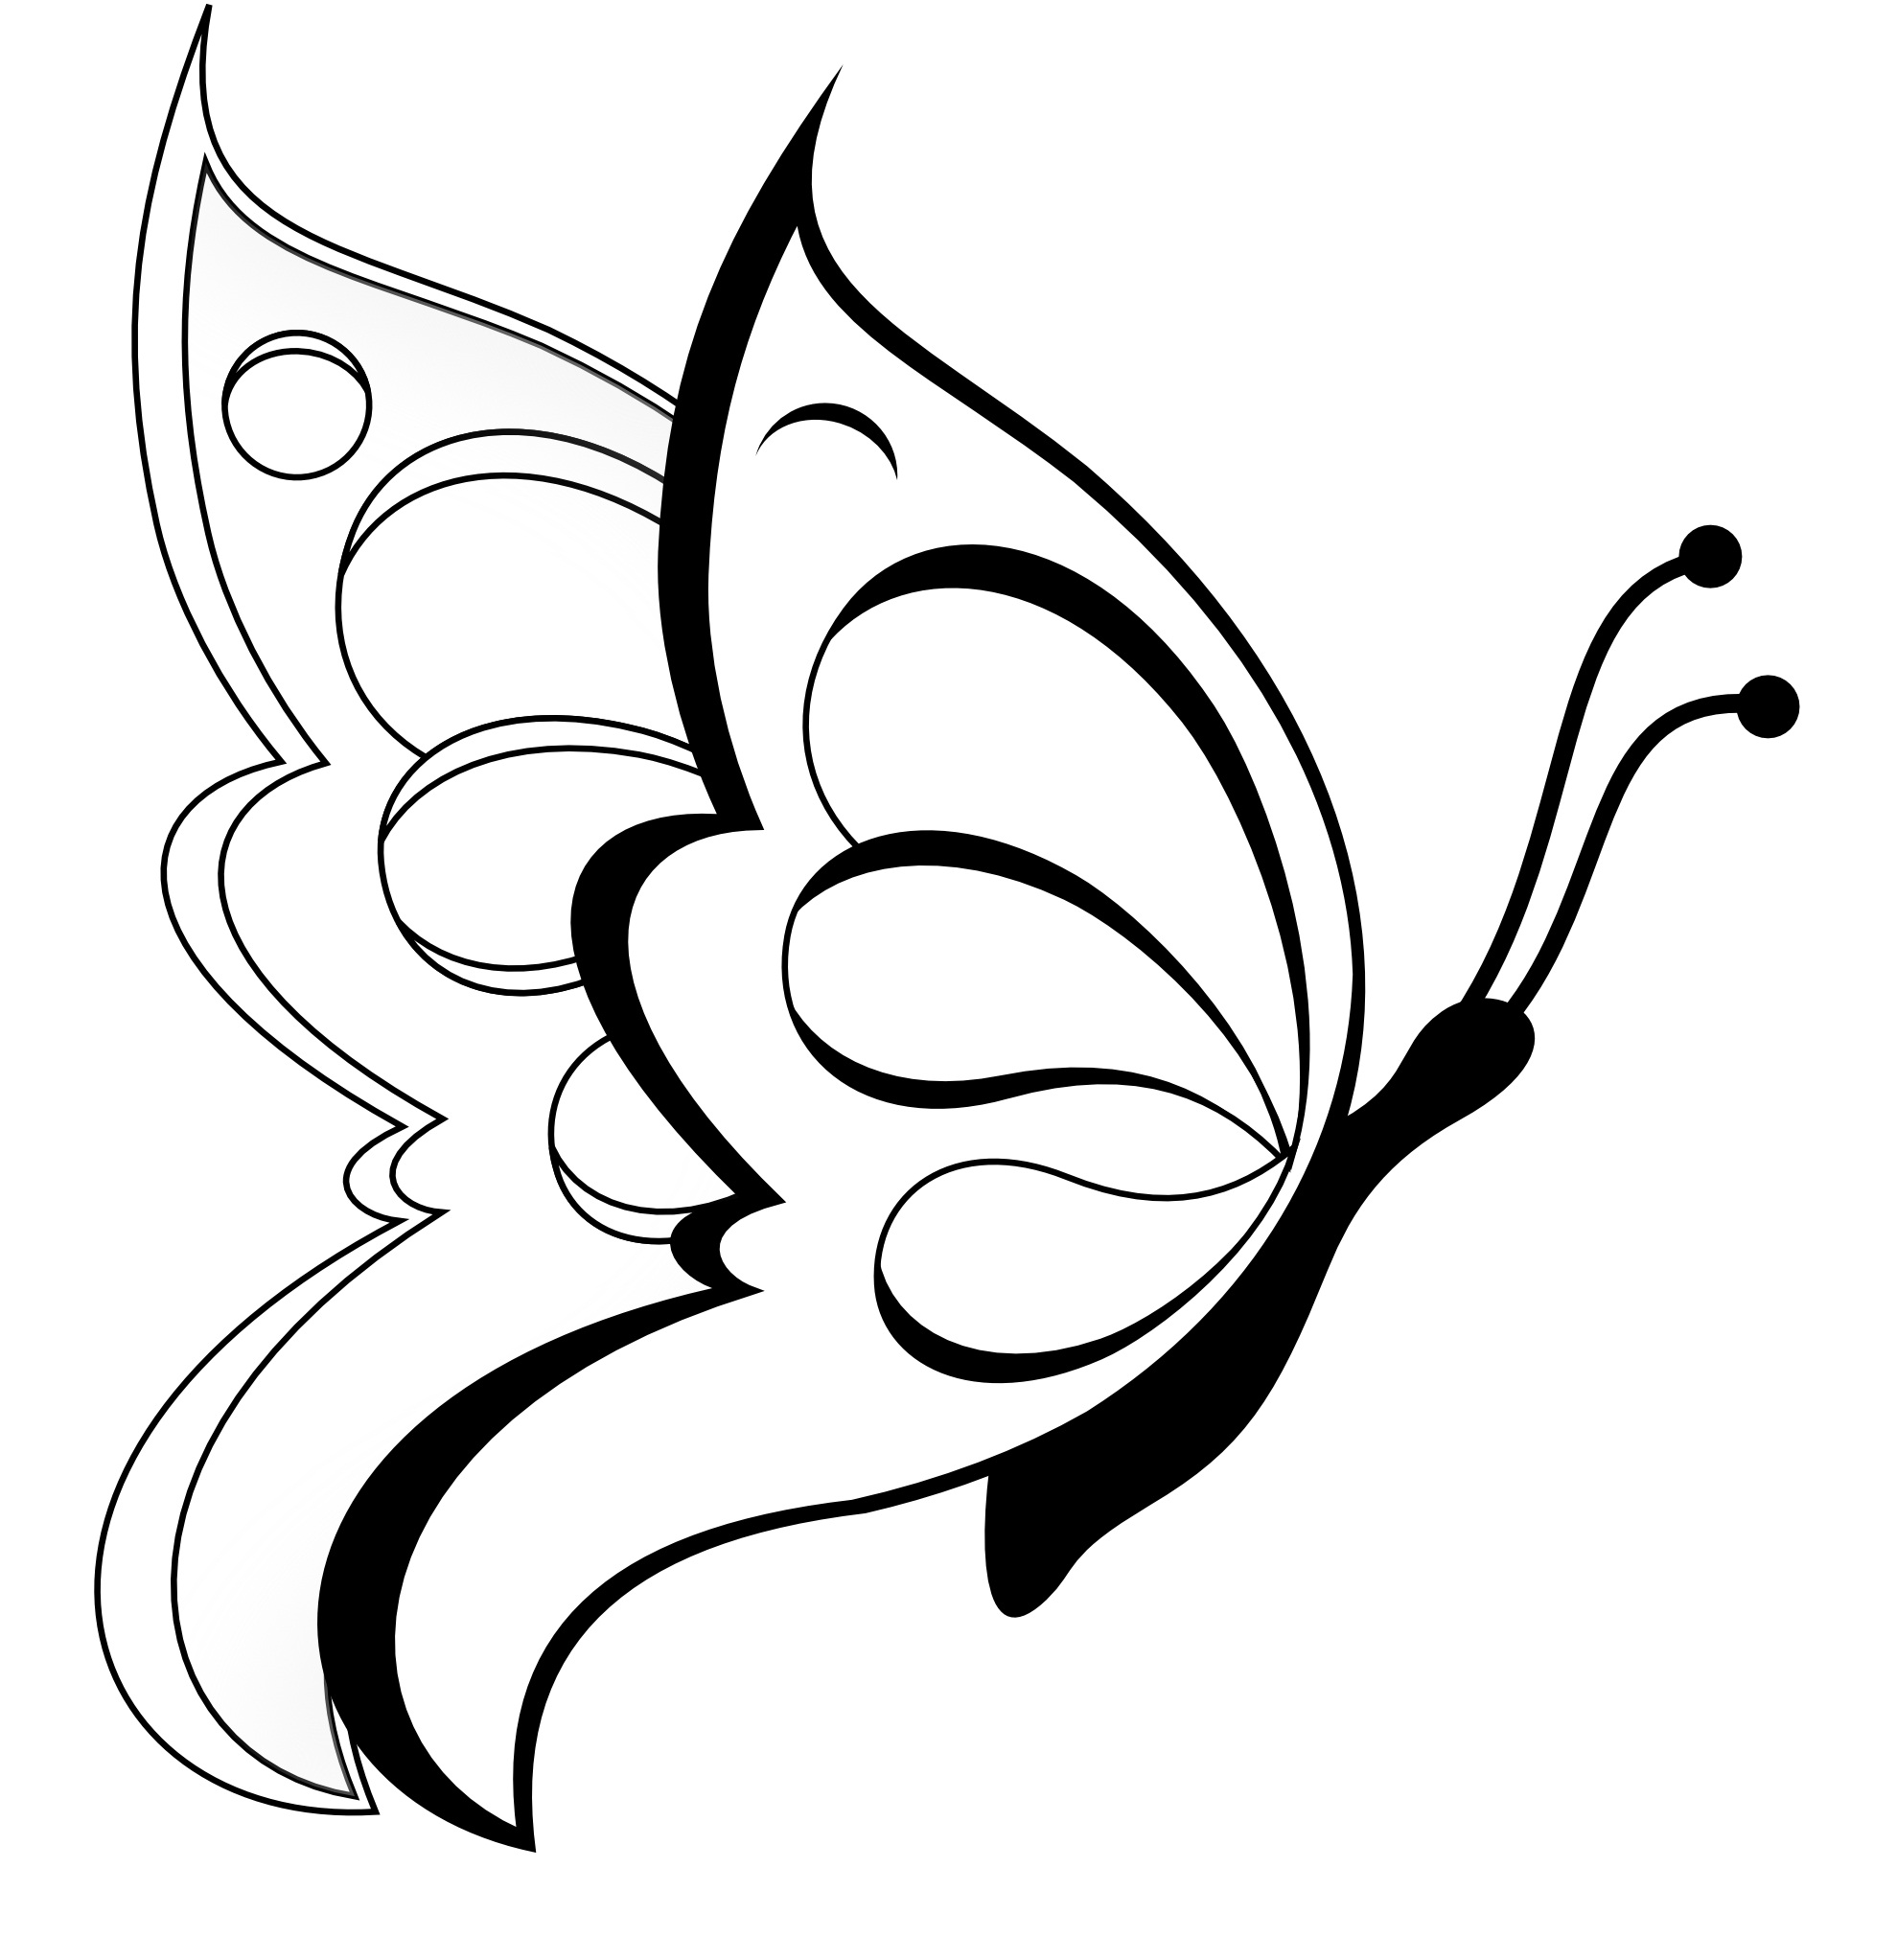 840 Free Butterfly Coloring Pages For Toddlers For Free